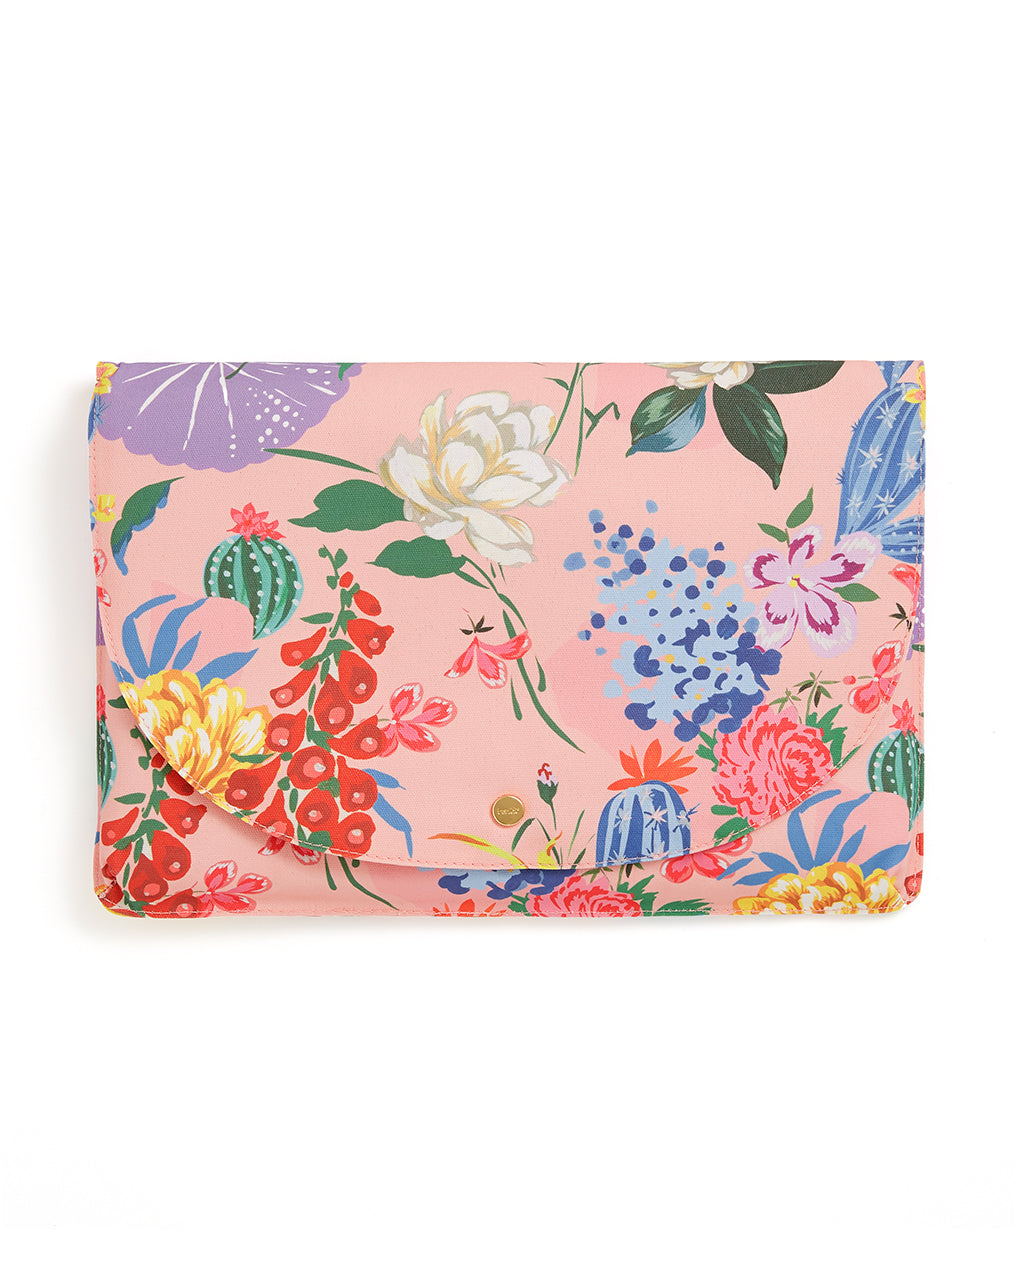 This Logged On Laptop Sleeve comes in a pink floral pattern.